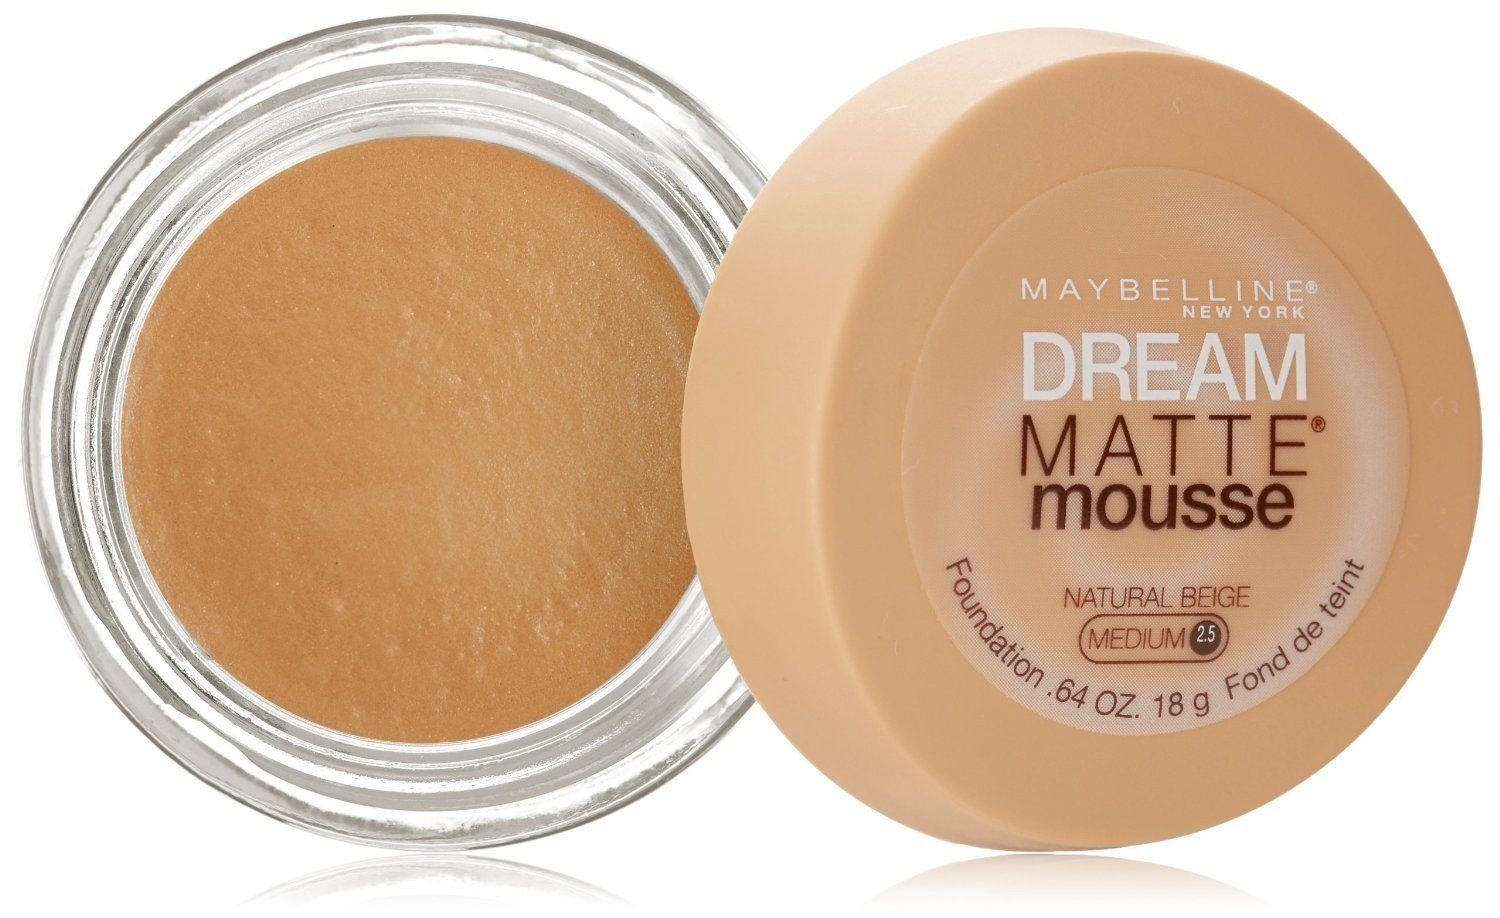 Maybelline Dream Matte Mousse Foundation – Natural Beige (Medium 2.5)